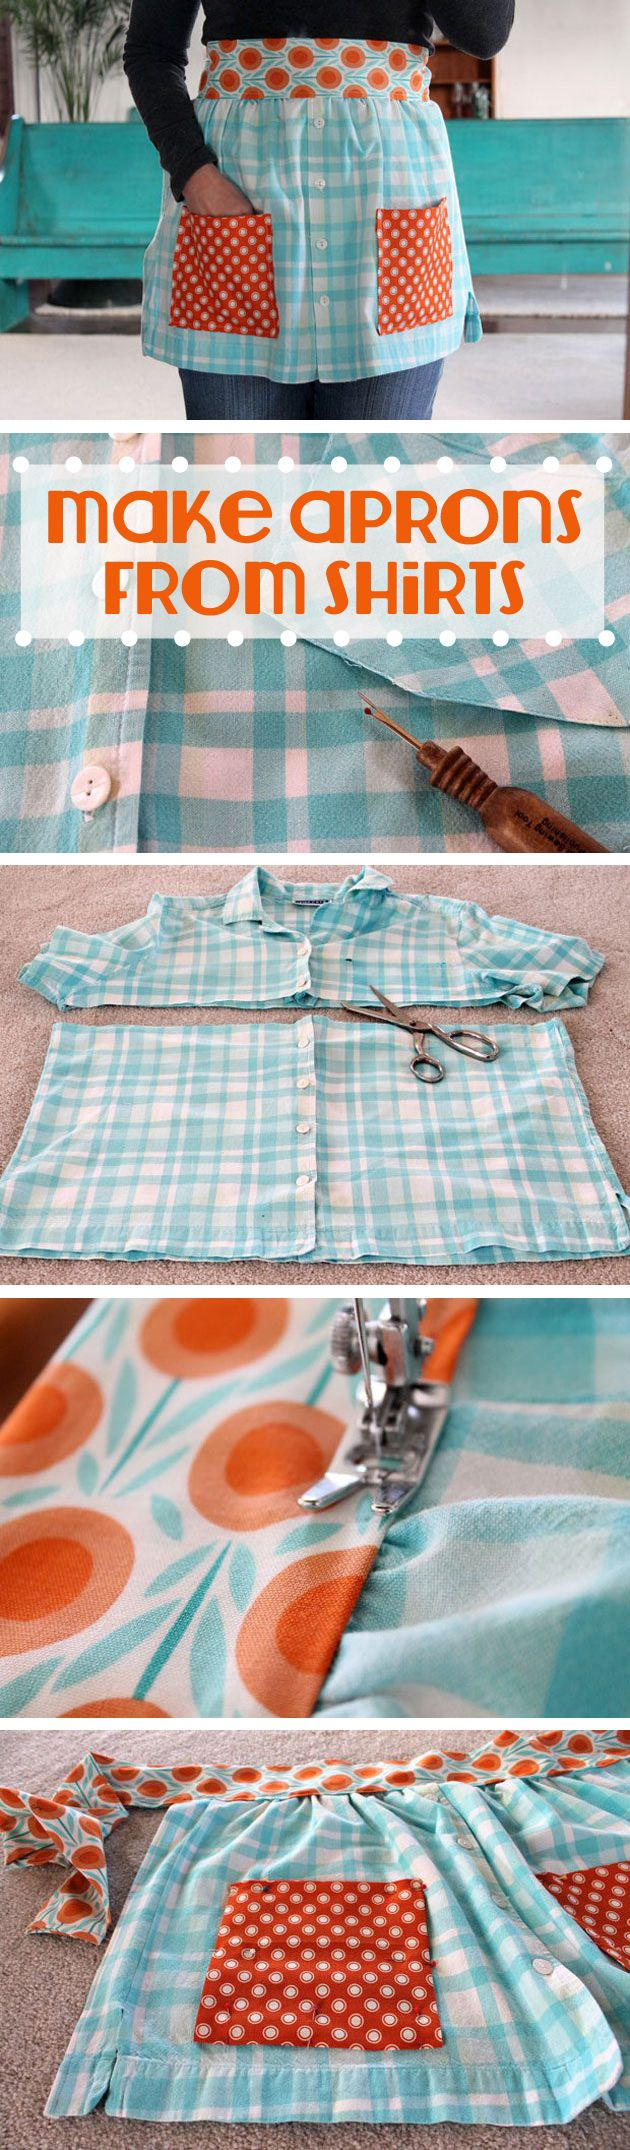 How to Make an Apron from Old Jeans How to Make an Apron from Old Jeans new pics